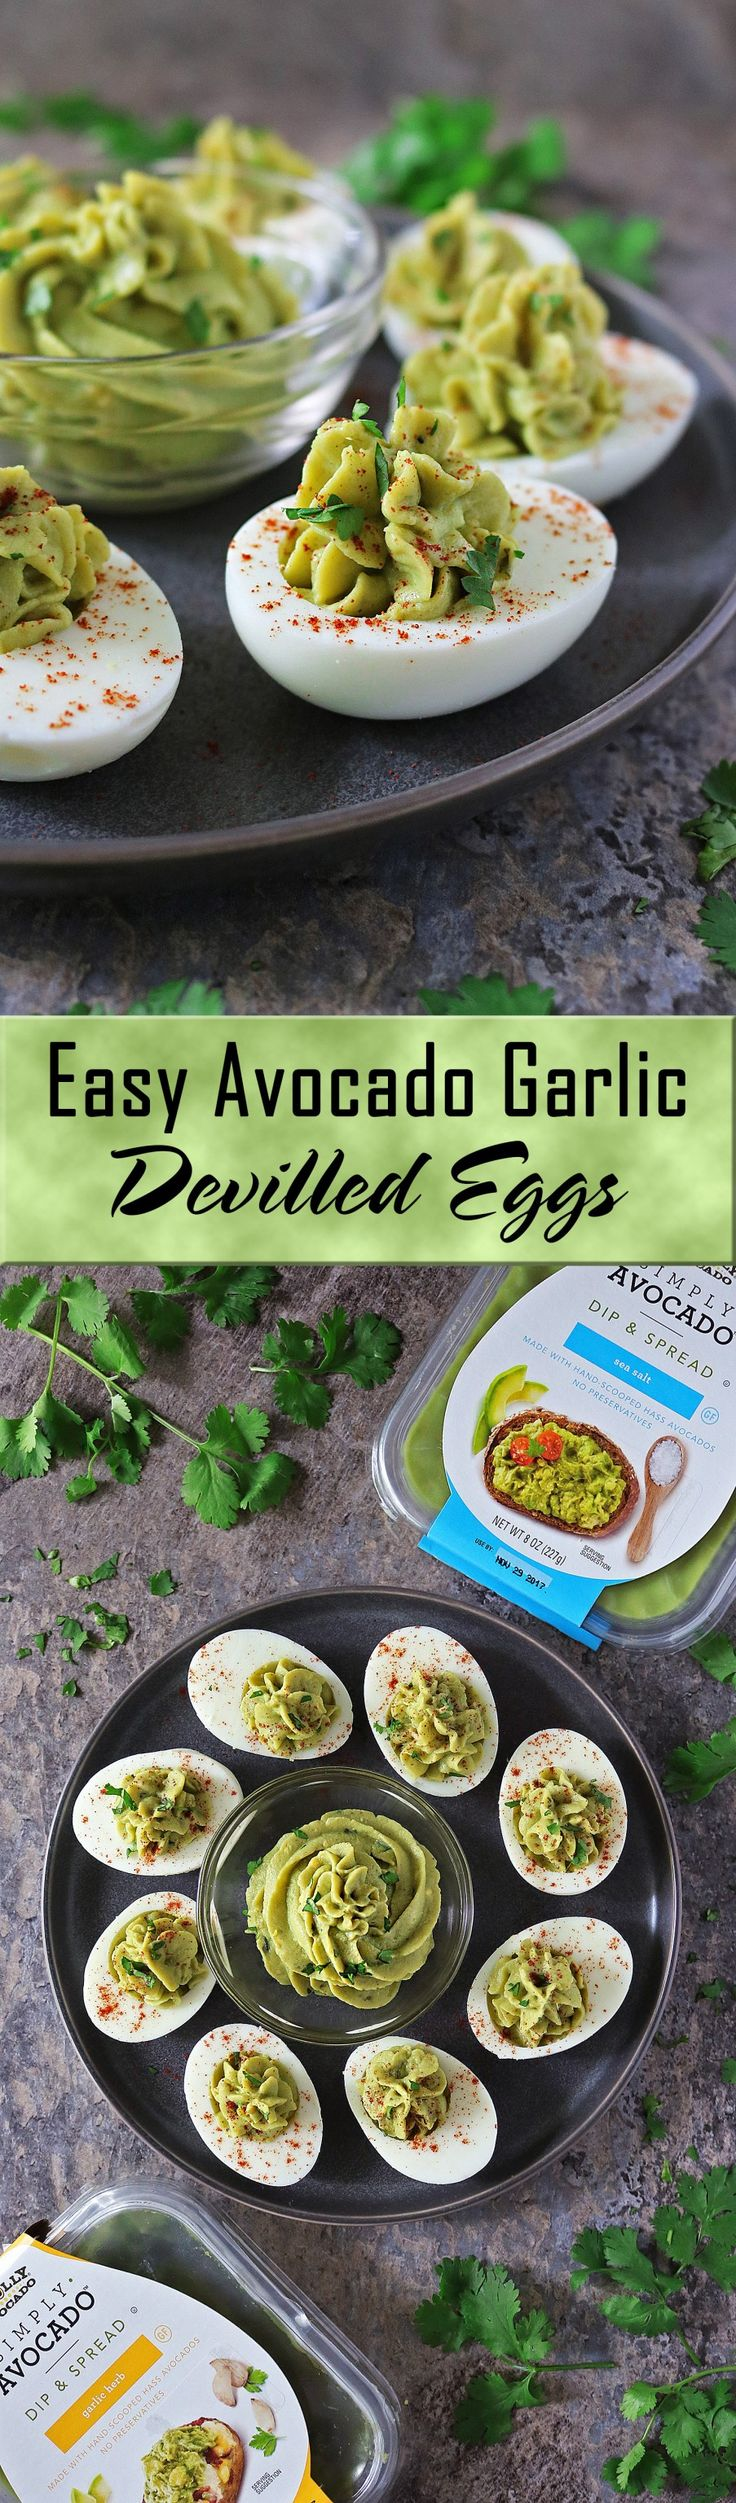 Make these Easy Deviled Avocado Garlic Eggs for any holiday parties you're attending or hosting! It's a perfect appetizer.